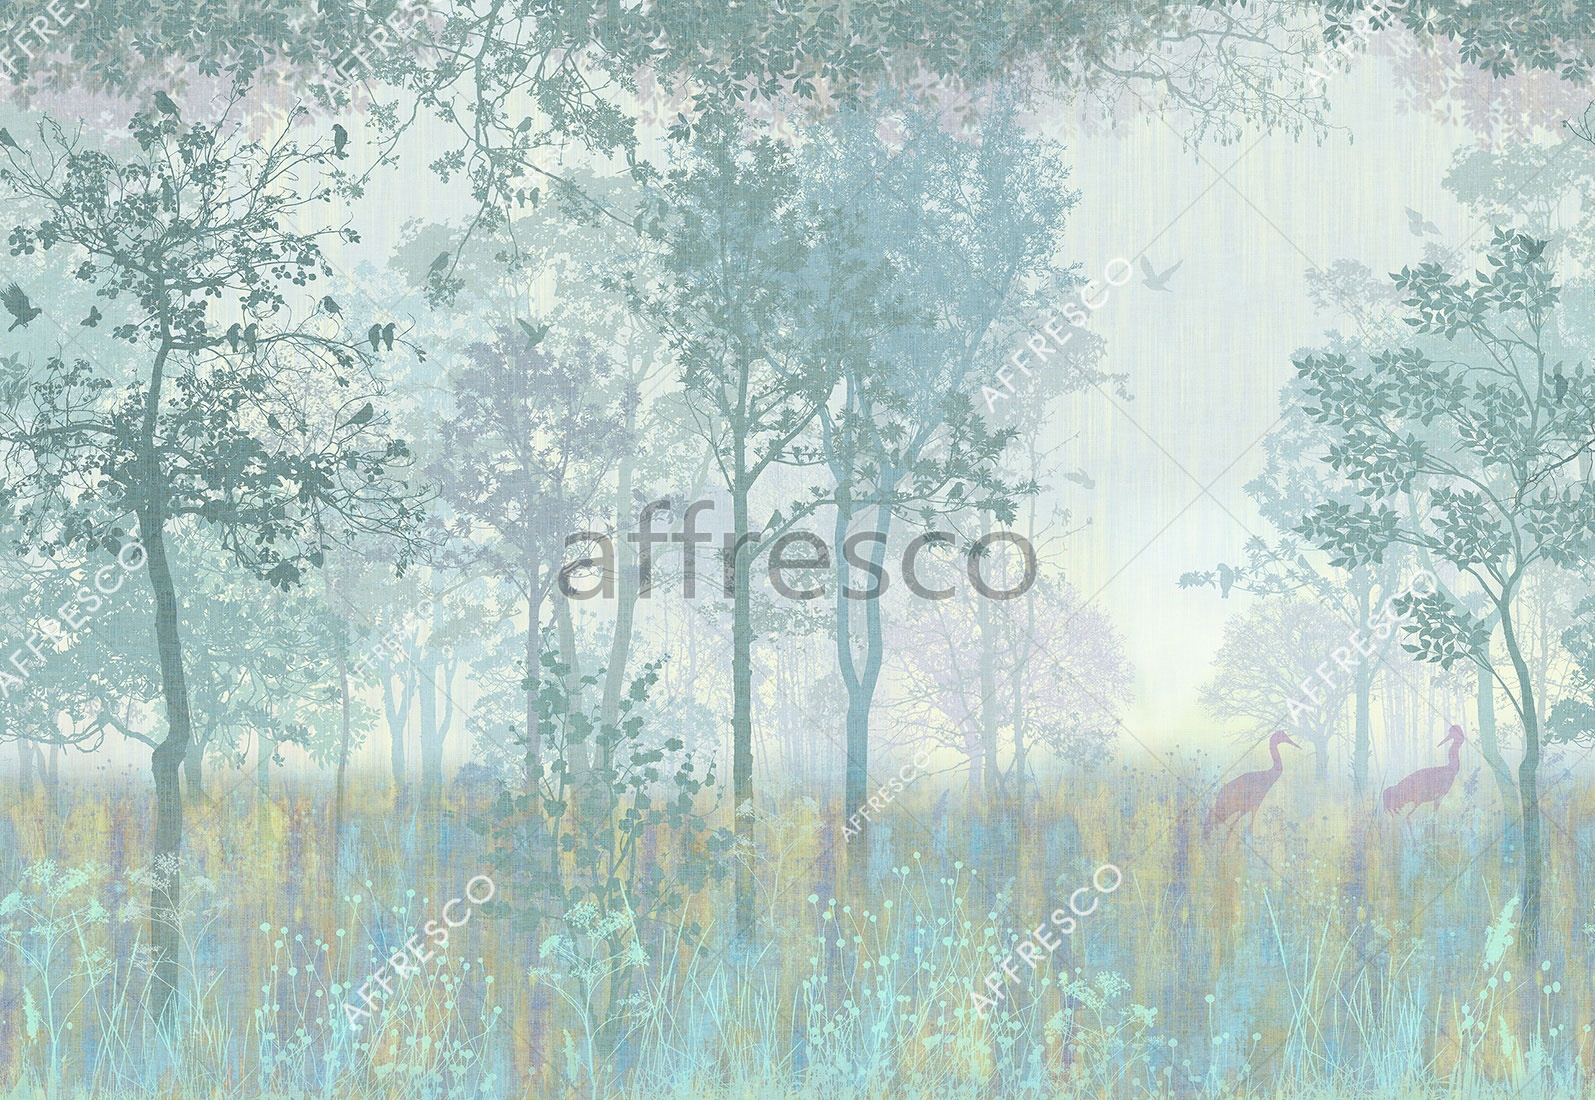 ID135973 | Forest |  | Affresco Factory